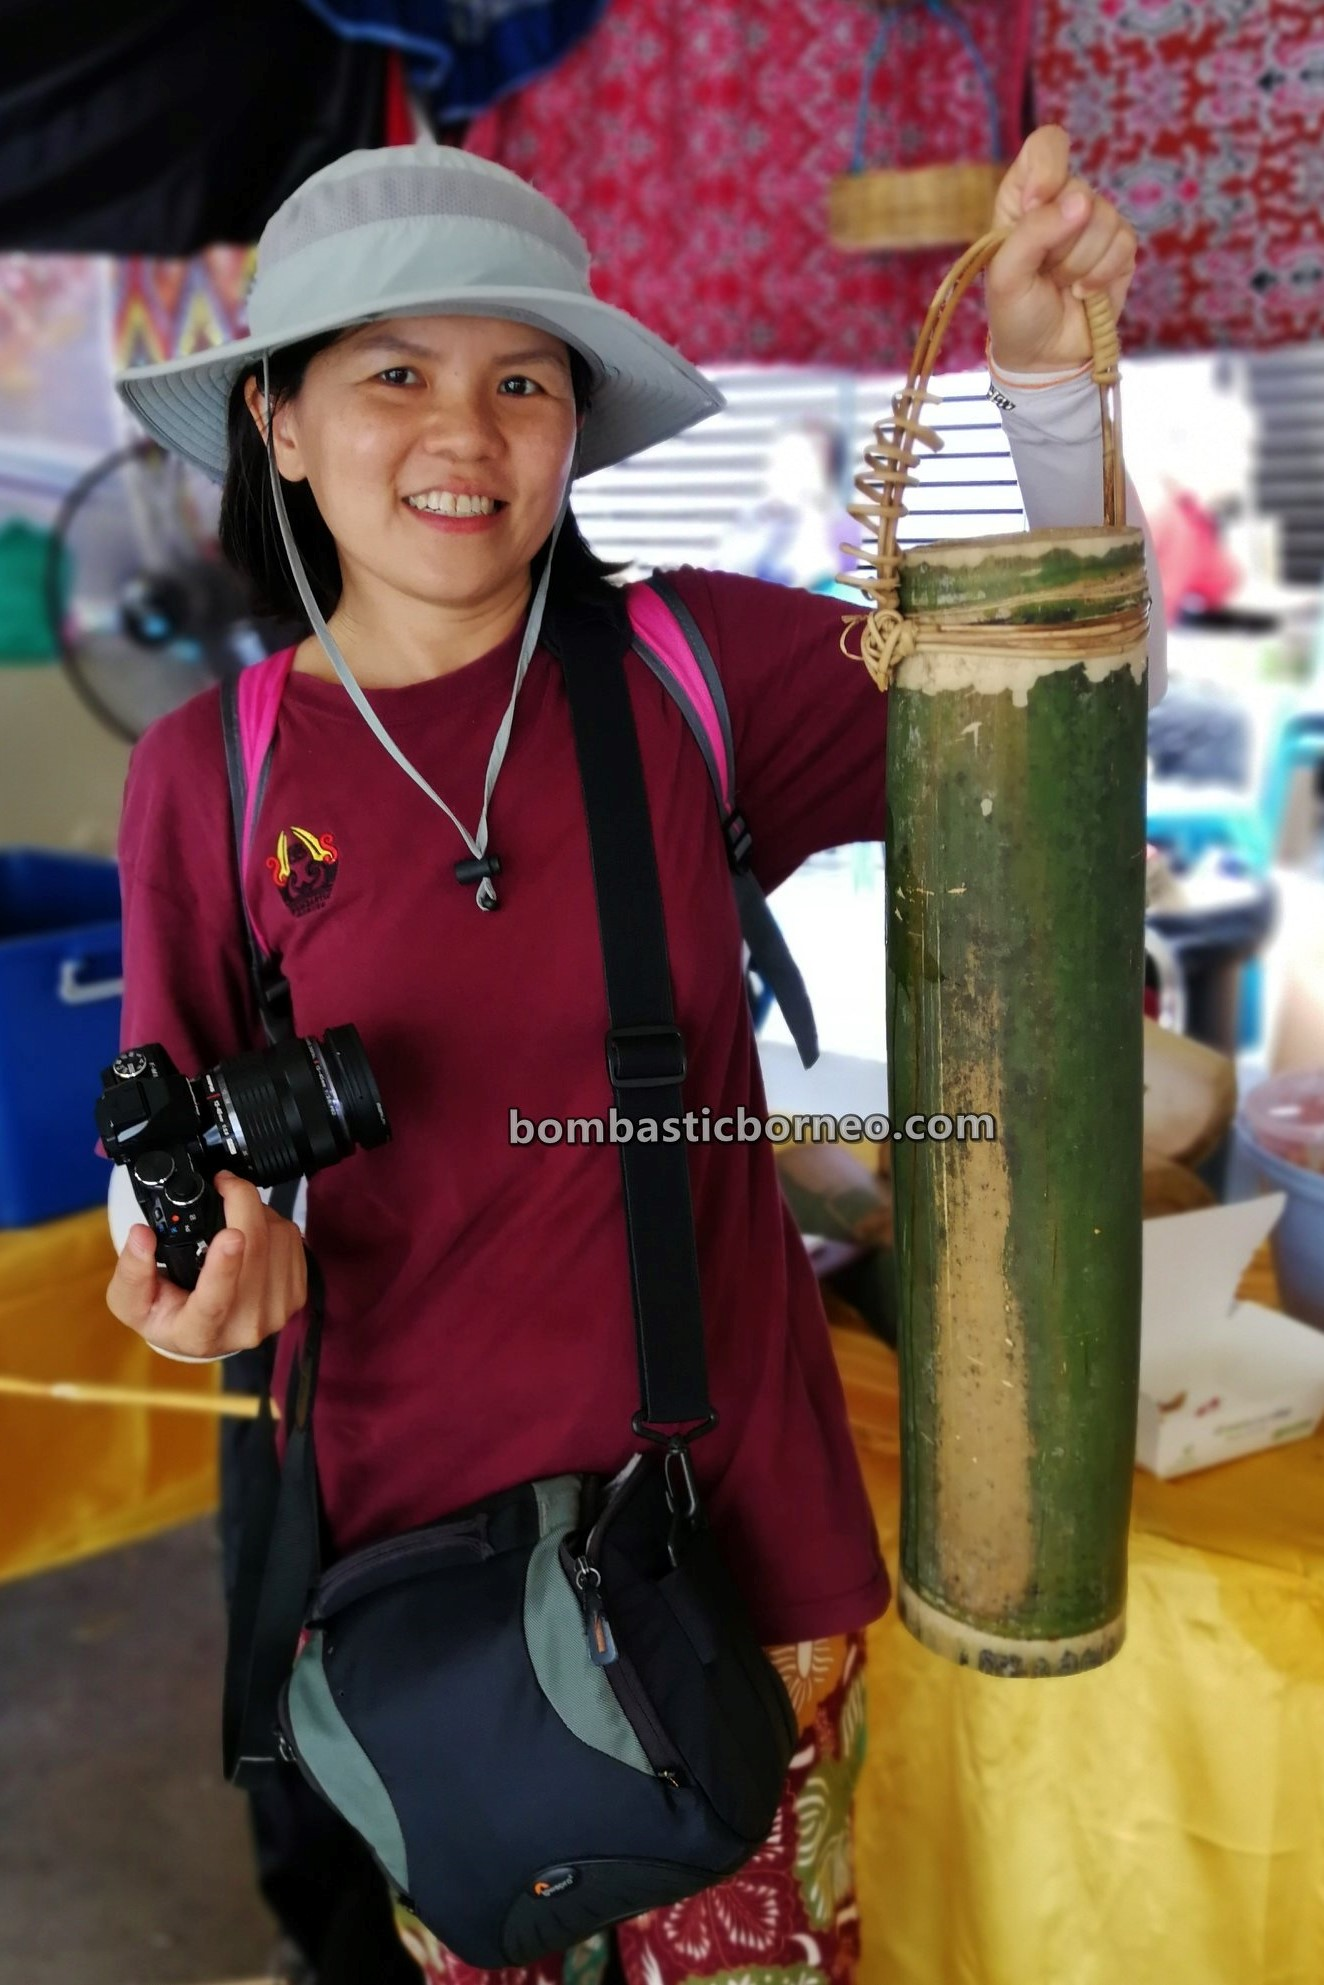 Water Festival, Pesta Regatta Lepa, backpackers, destination, budaya, culture, traditional, event, Semporna, Tawau, Sabah, Malaysia, Tourism, travel guide, Borneo,